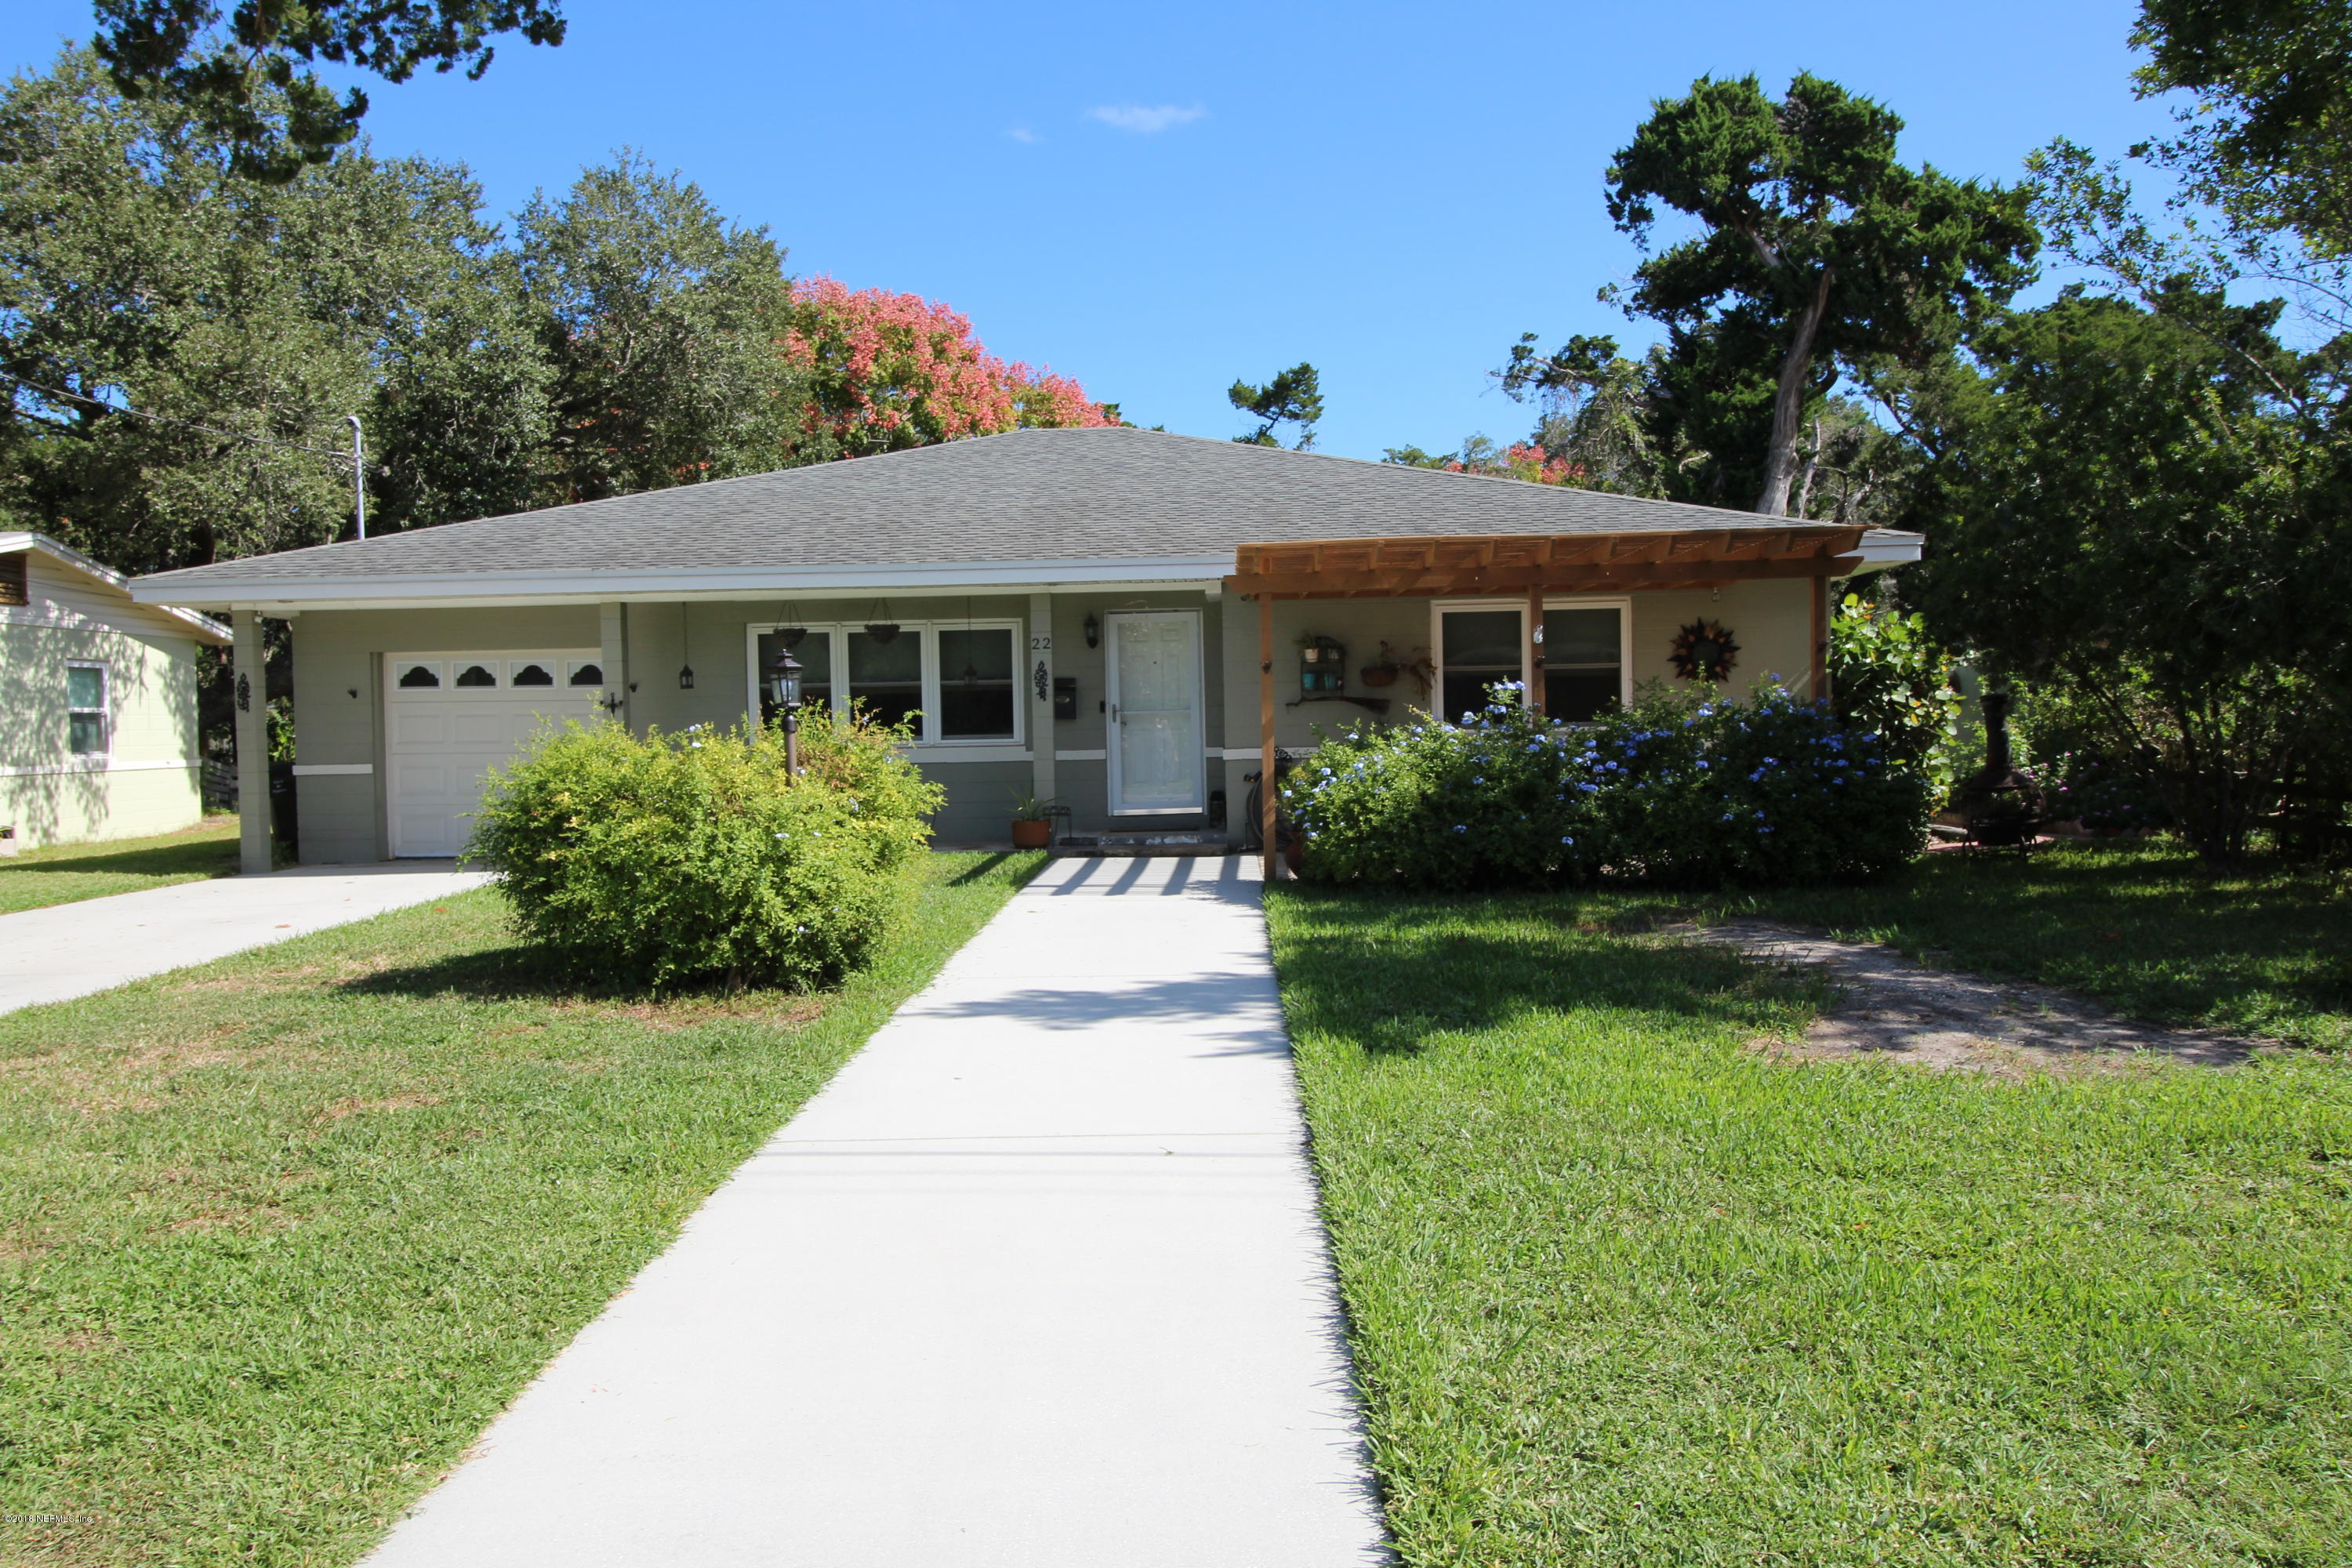 22 COQUINA, ST AUGUSTINE, FLORIDA 32080, 3 Bedrooms Bedrooms, ,3 BathroomsBathrooms,Residential - single family,For sale,COQUINA,965036